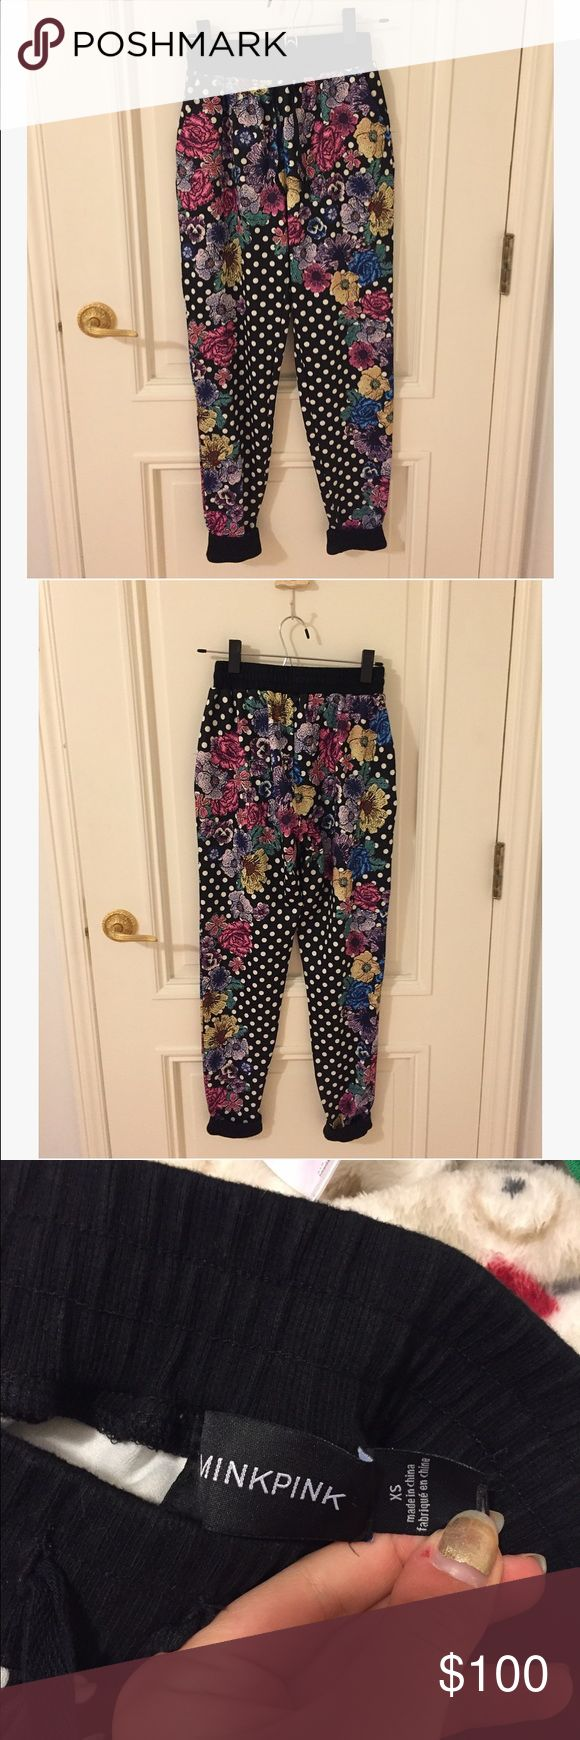 Abstract Printed MinkPink Joggers So cute and in excellent used condition. Have a really cool print and in a jogger/sweatpants style. Size women's x-small. All sales final (similar ones spotted on Cara Delevingne) MINKPINK Pants Track Pants & Joggers